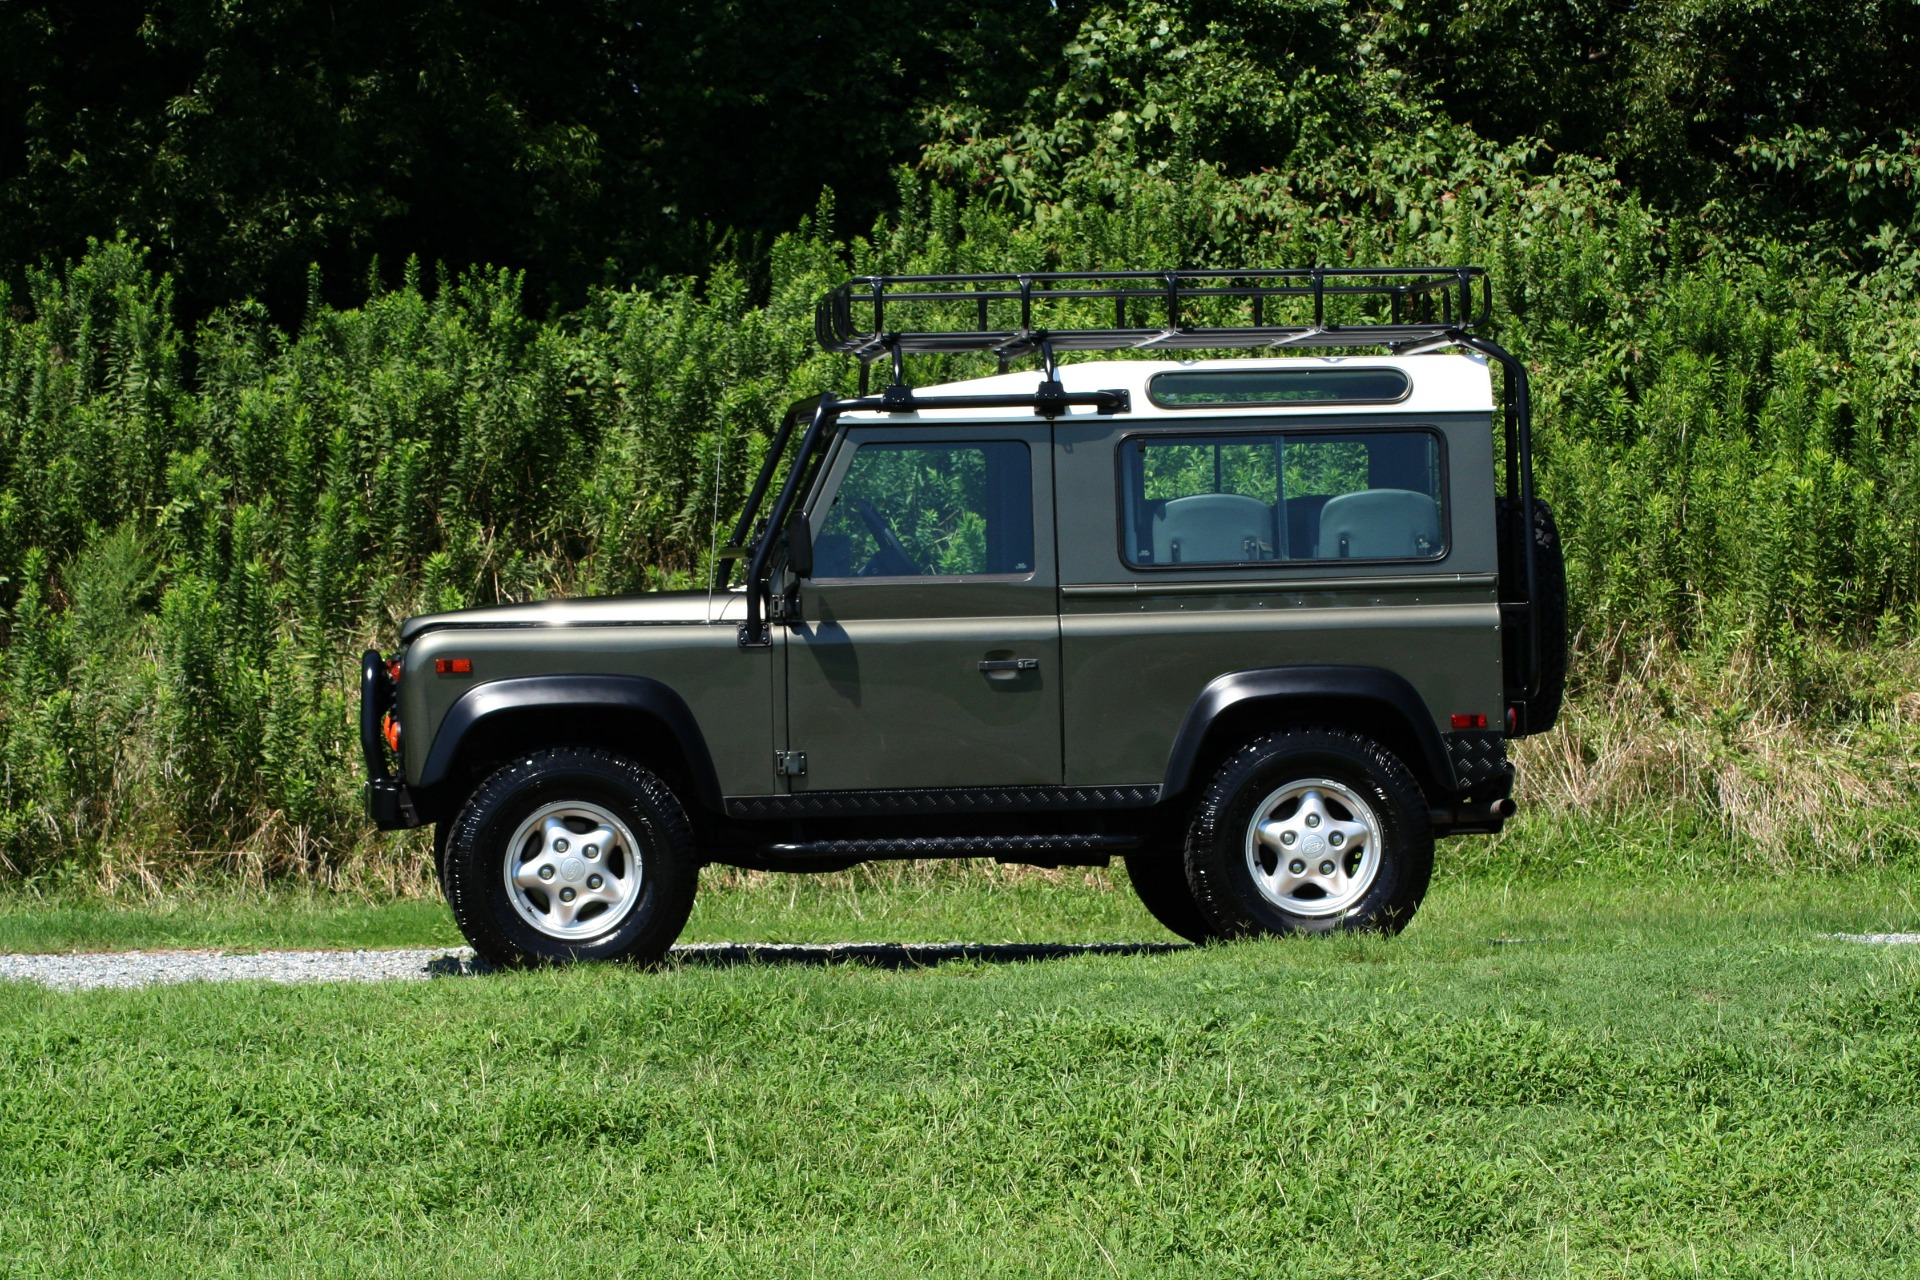 Used 1997 Land Rover DEFENDER 90 LIMITED EDITION / HARD-TOP / 4WD / FULLY RESTORED / LOW MILES for sale $119,000 at Formula Imports in Charlotte NC 28227 11